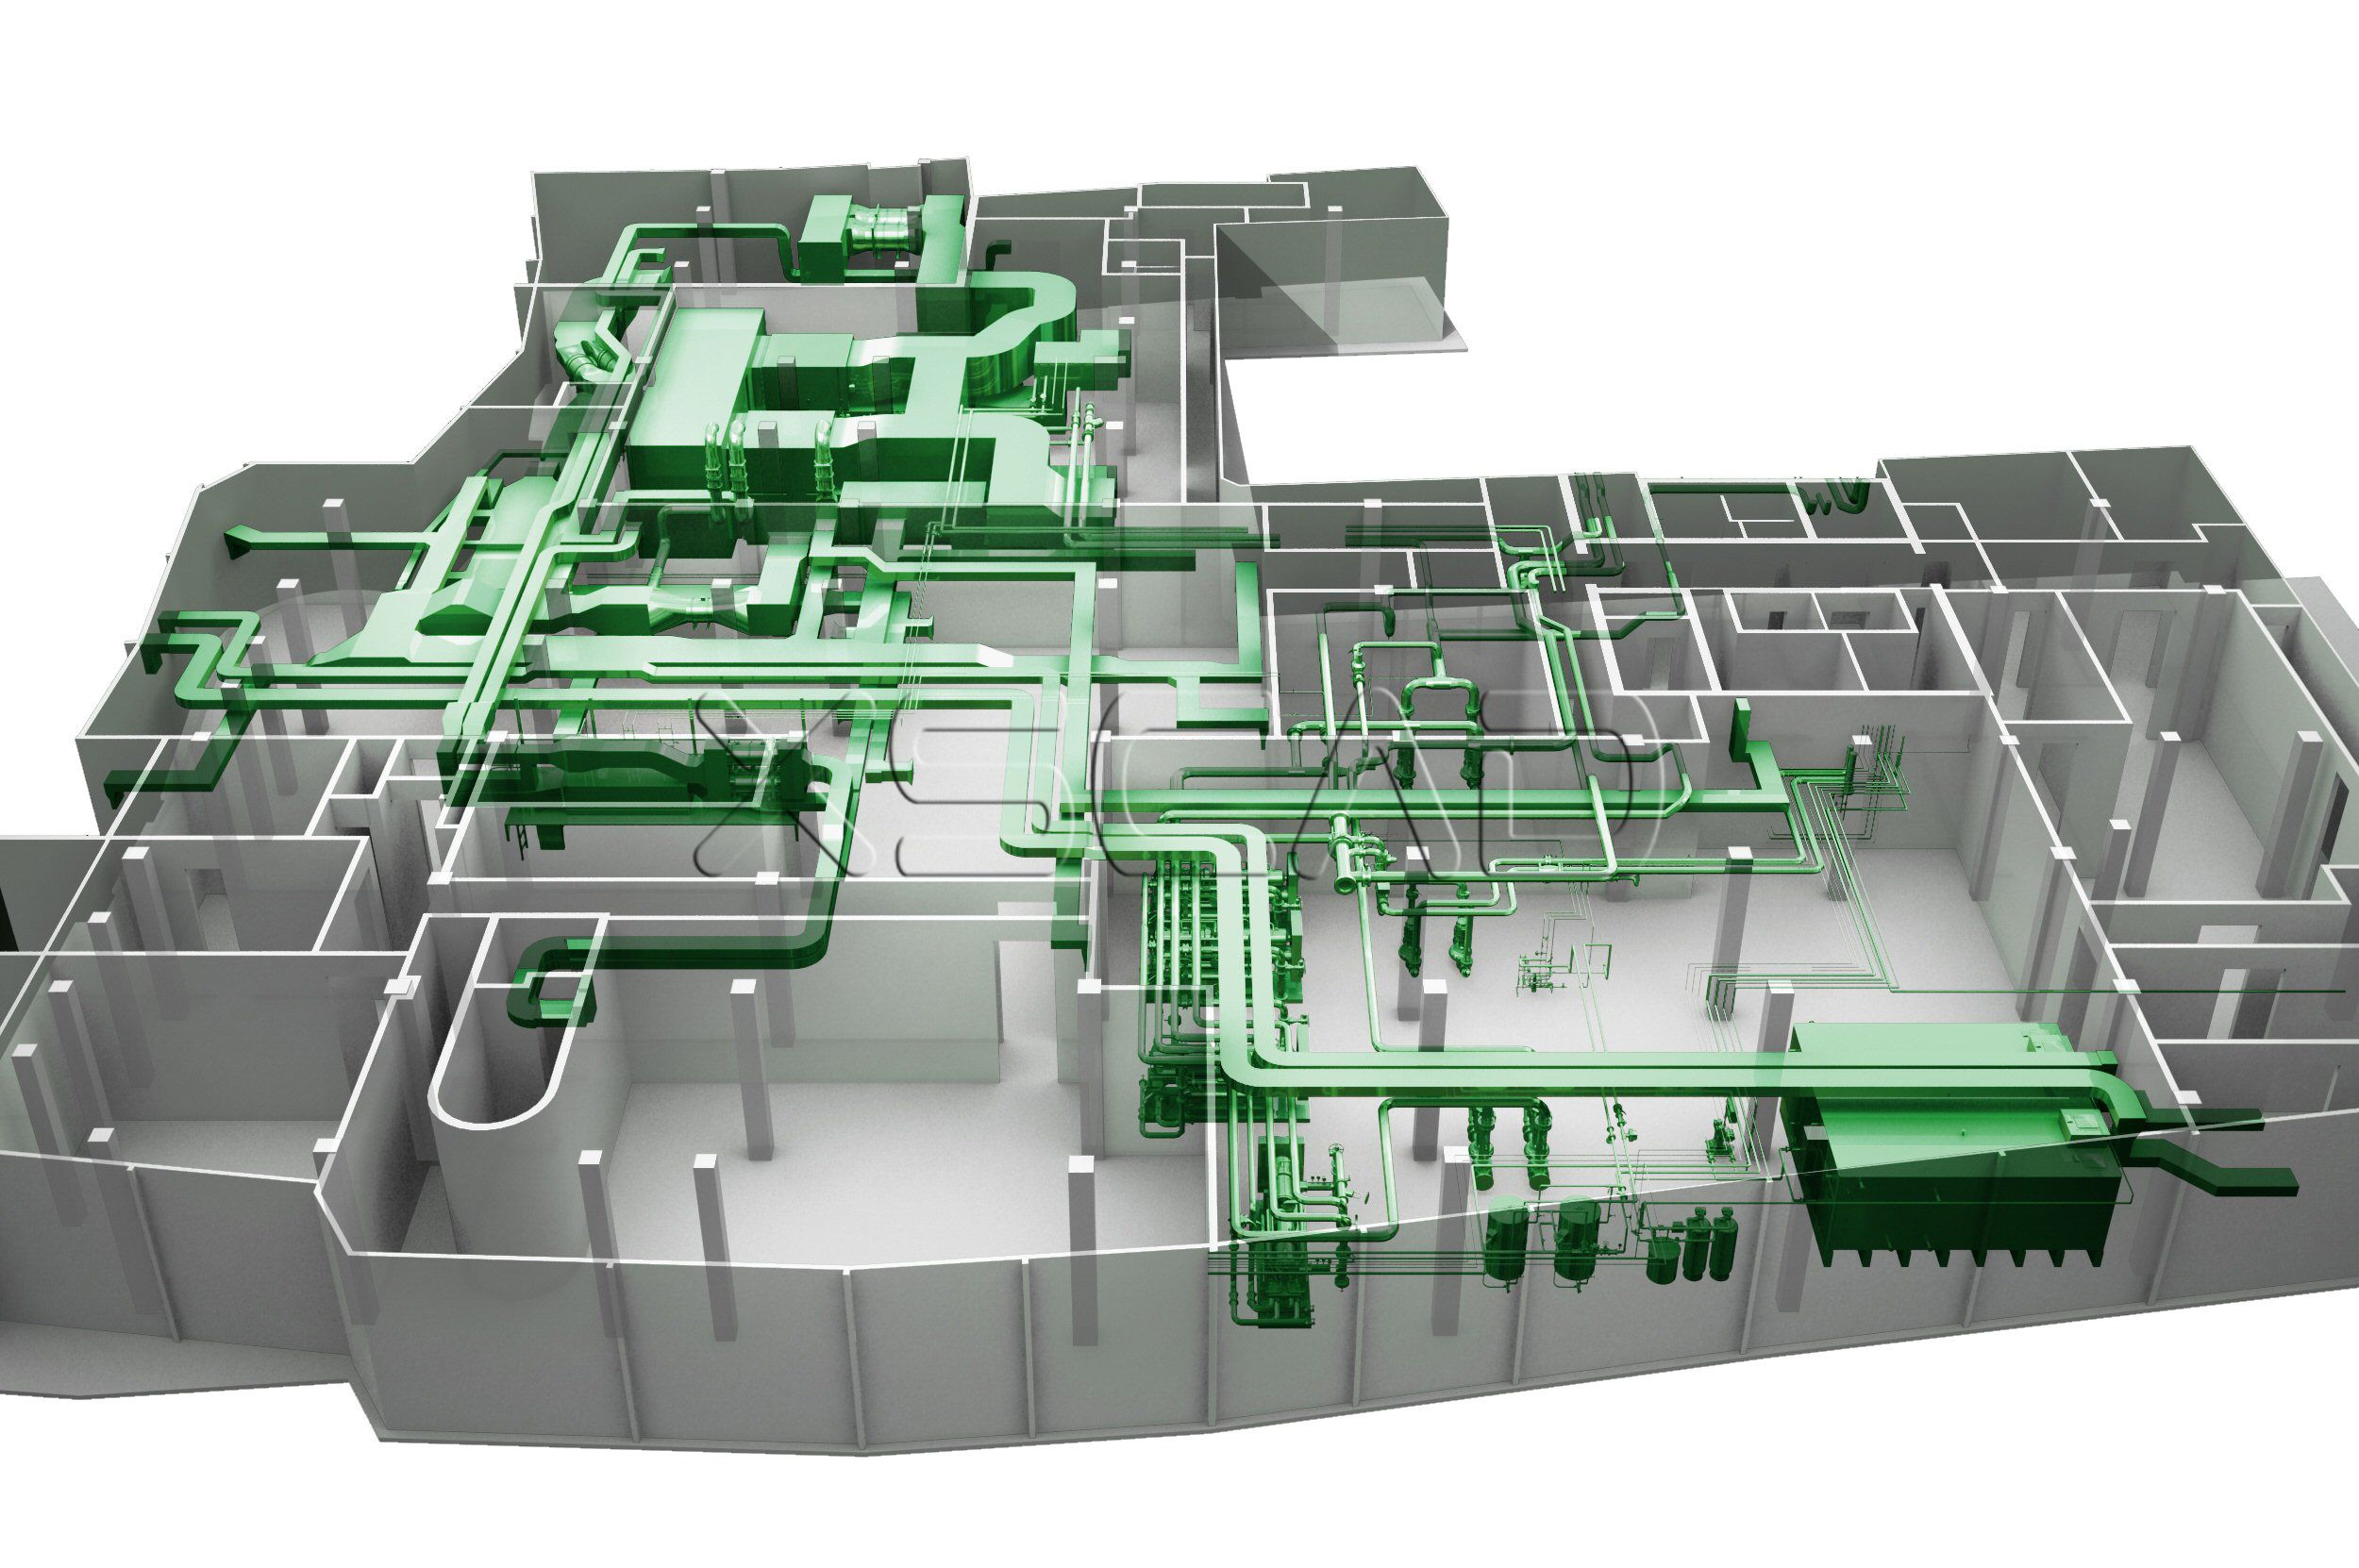 medium resolution of with over 10 years of experience xs cad limited offers highly professional revit mep modeling architectural cad services architectural drafting